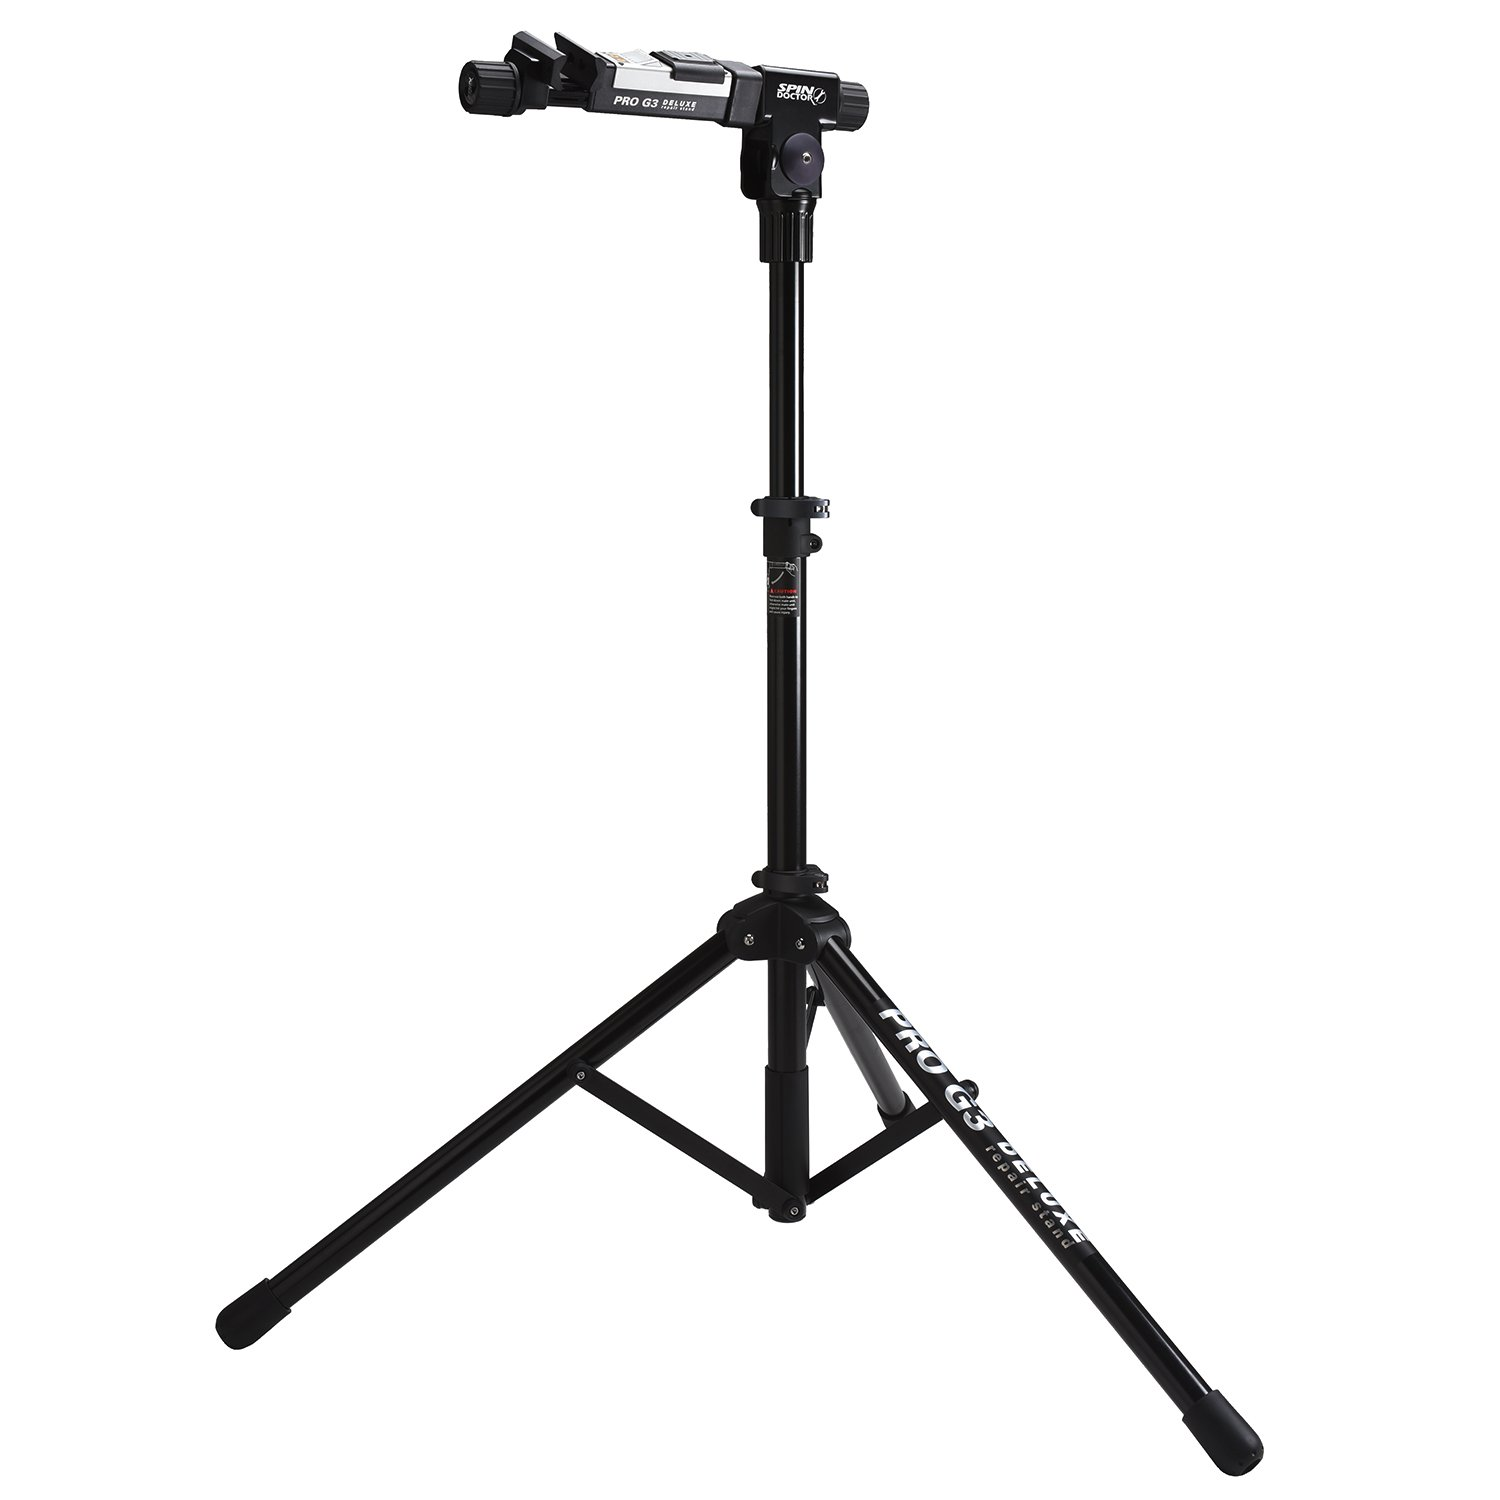 Spin Doctor Pro G3 DELUXE Bicycle Work Stand